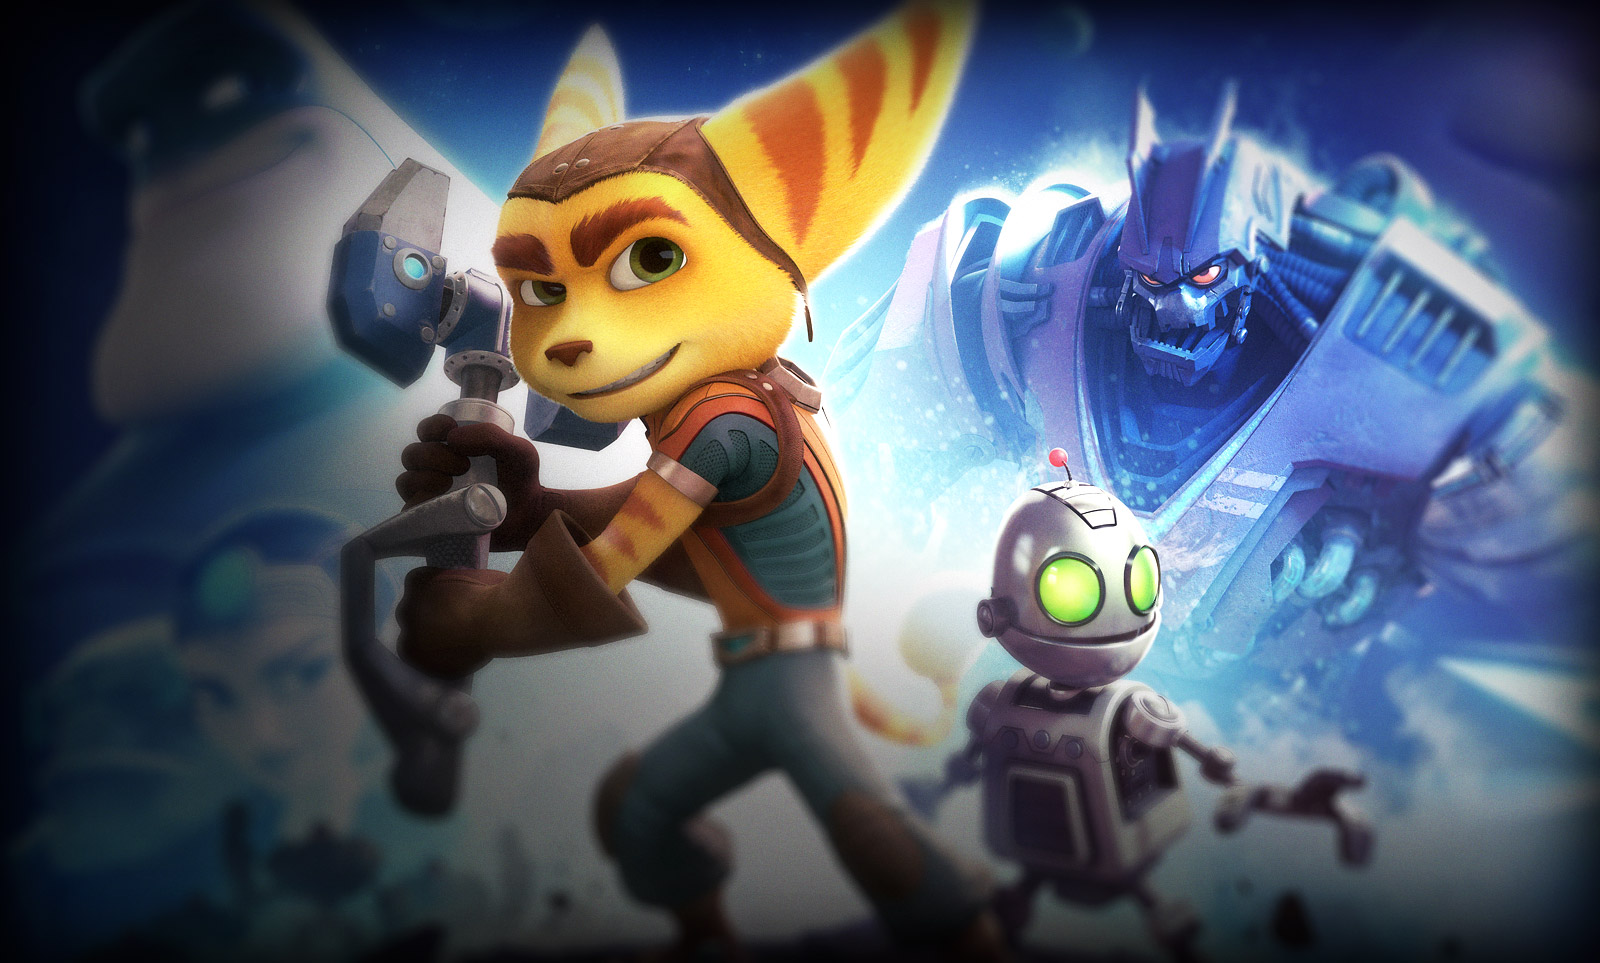 Design Home Cheats For Ipod Clank From Ratchet And Clank Ratchet Clank Creaturebox